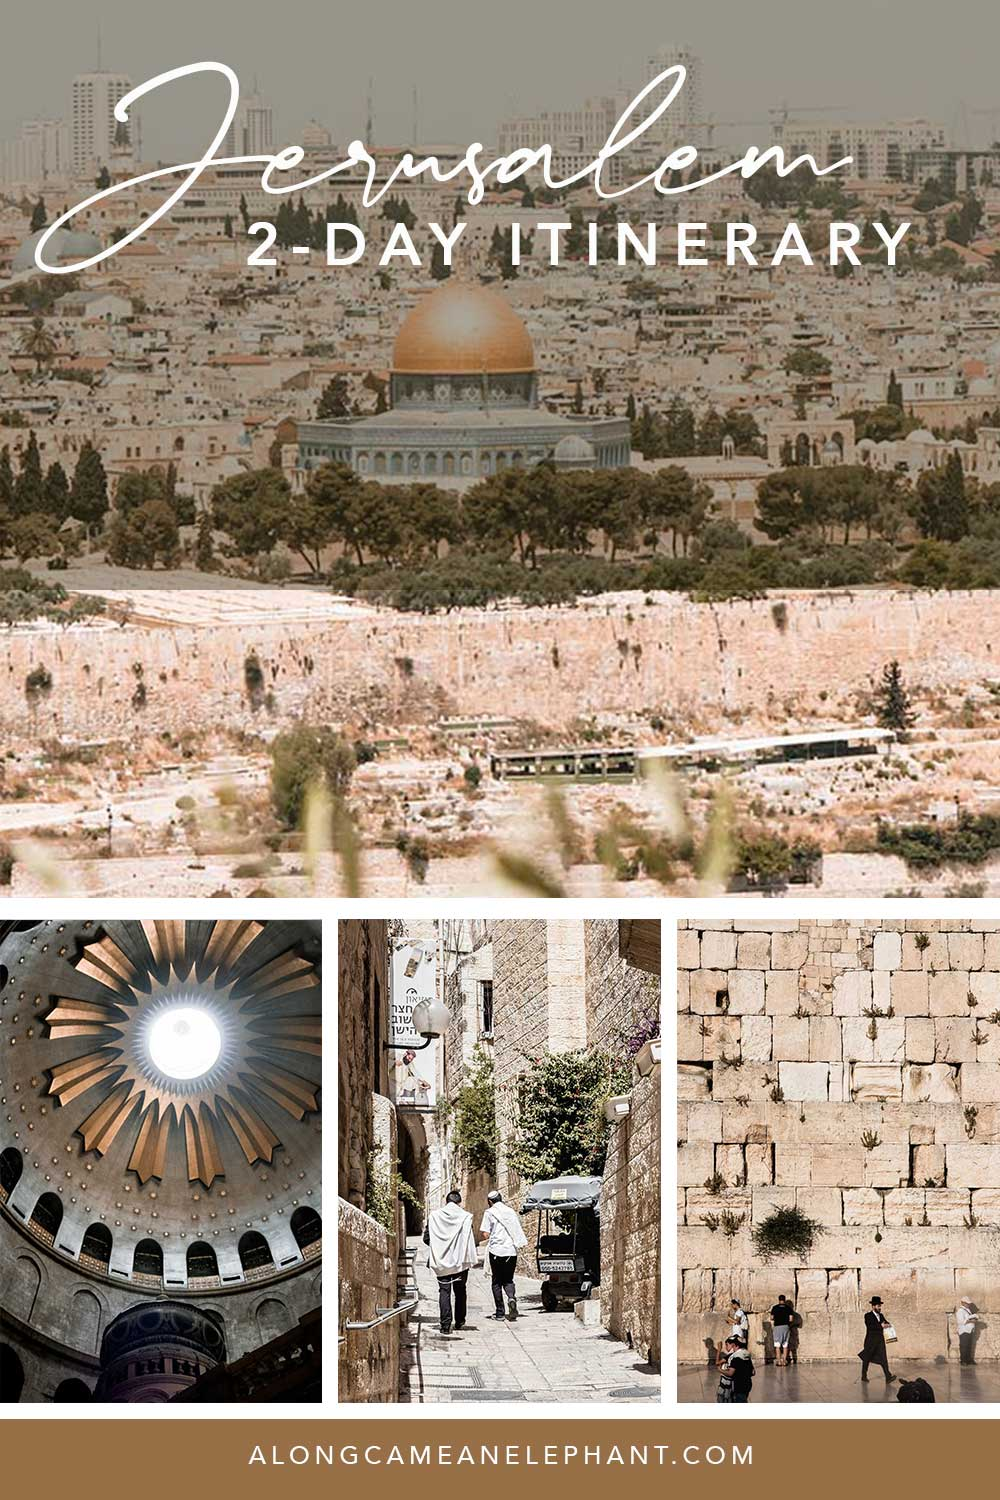 A perfect 2-day itinerary in the world capital of religion: Jerusalem. During two days, you'll explore the main highlights and sights of Judaism, Christianity and Islam. Our detailed 2-day Jerusalem itinerary includes entry prices, opening hours and an hour by hour itinerary designed and experienced by us!  #jerusalem #jerusalemitinerary #citytrip #visitisrael #travelisrael